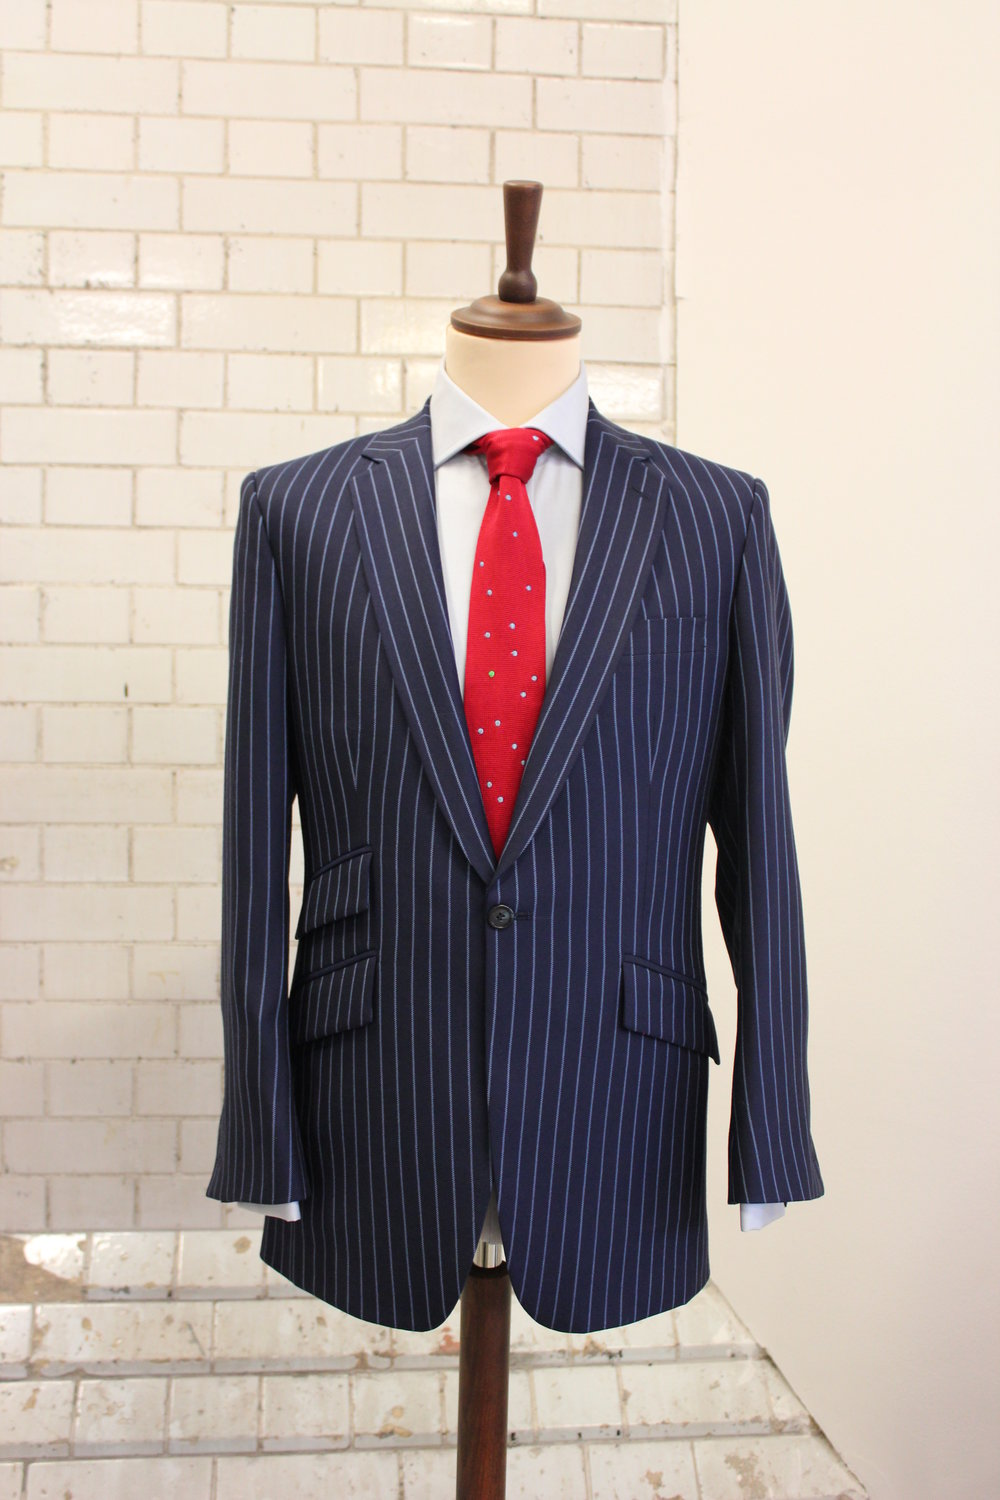 british-bespoke-tailor-all-uk-made-harrisons-shirt-blue-chalk-stripe-augustus-hare-red-knitted-tie-menswear-style.JPG